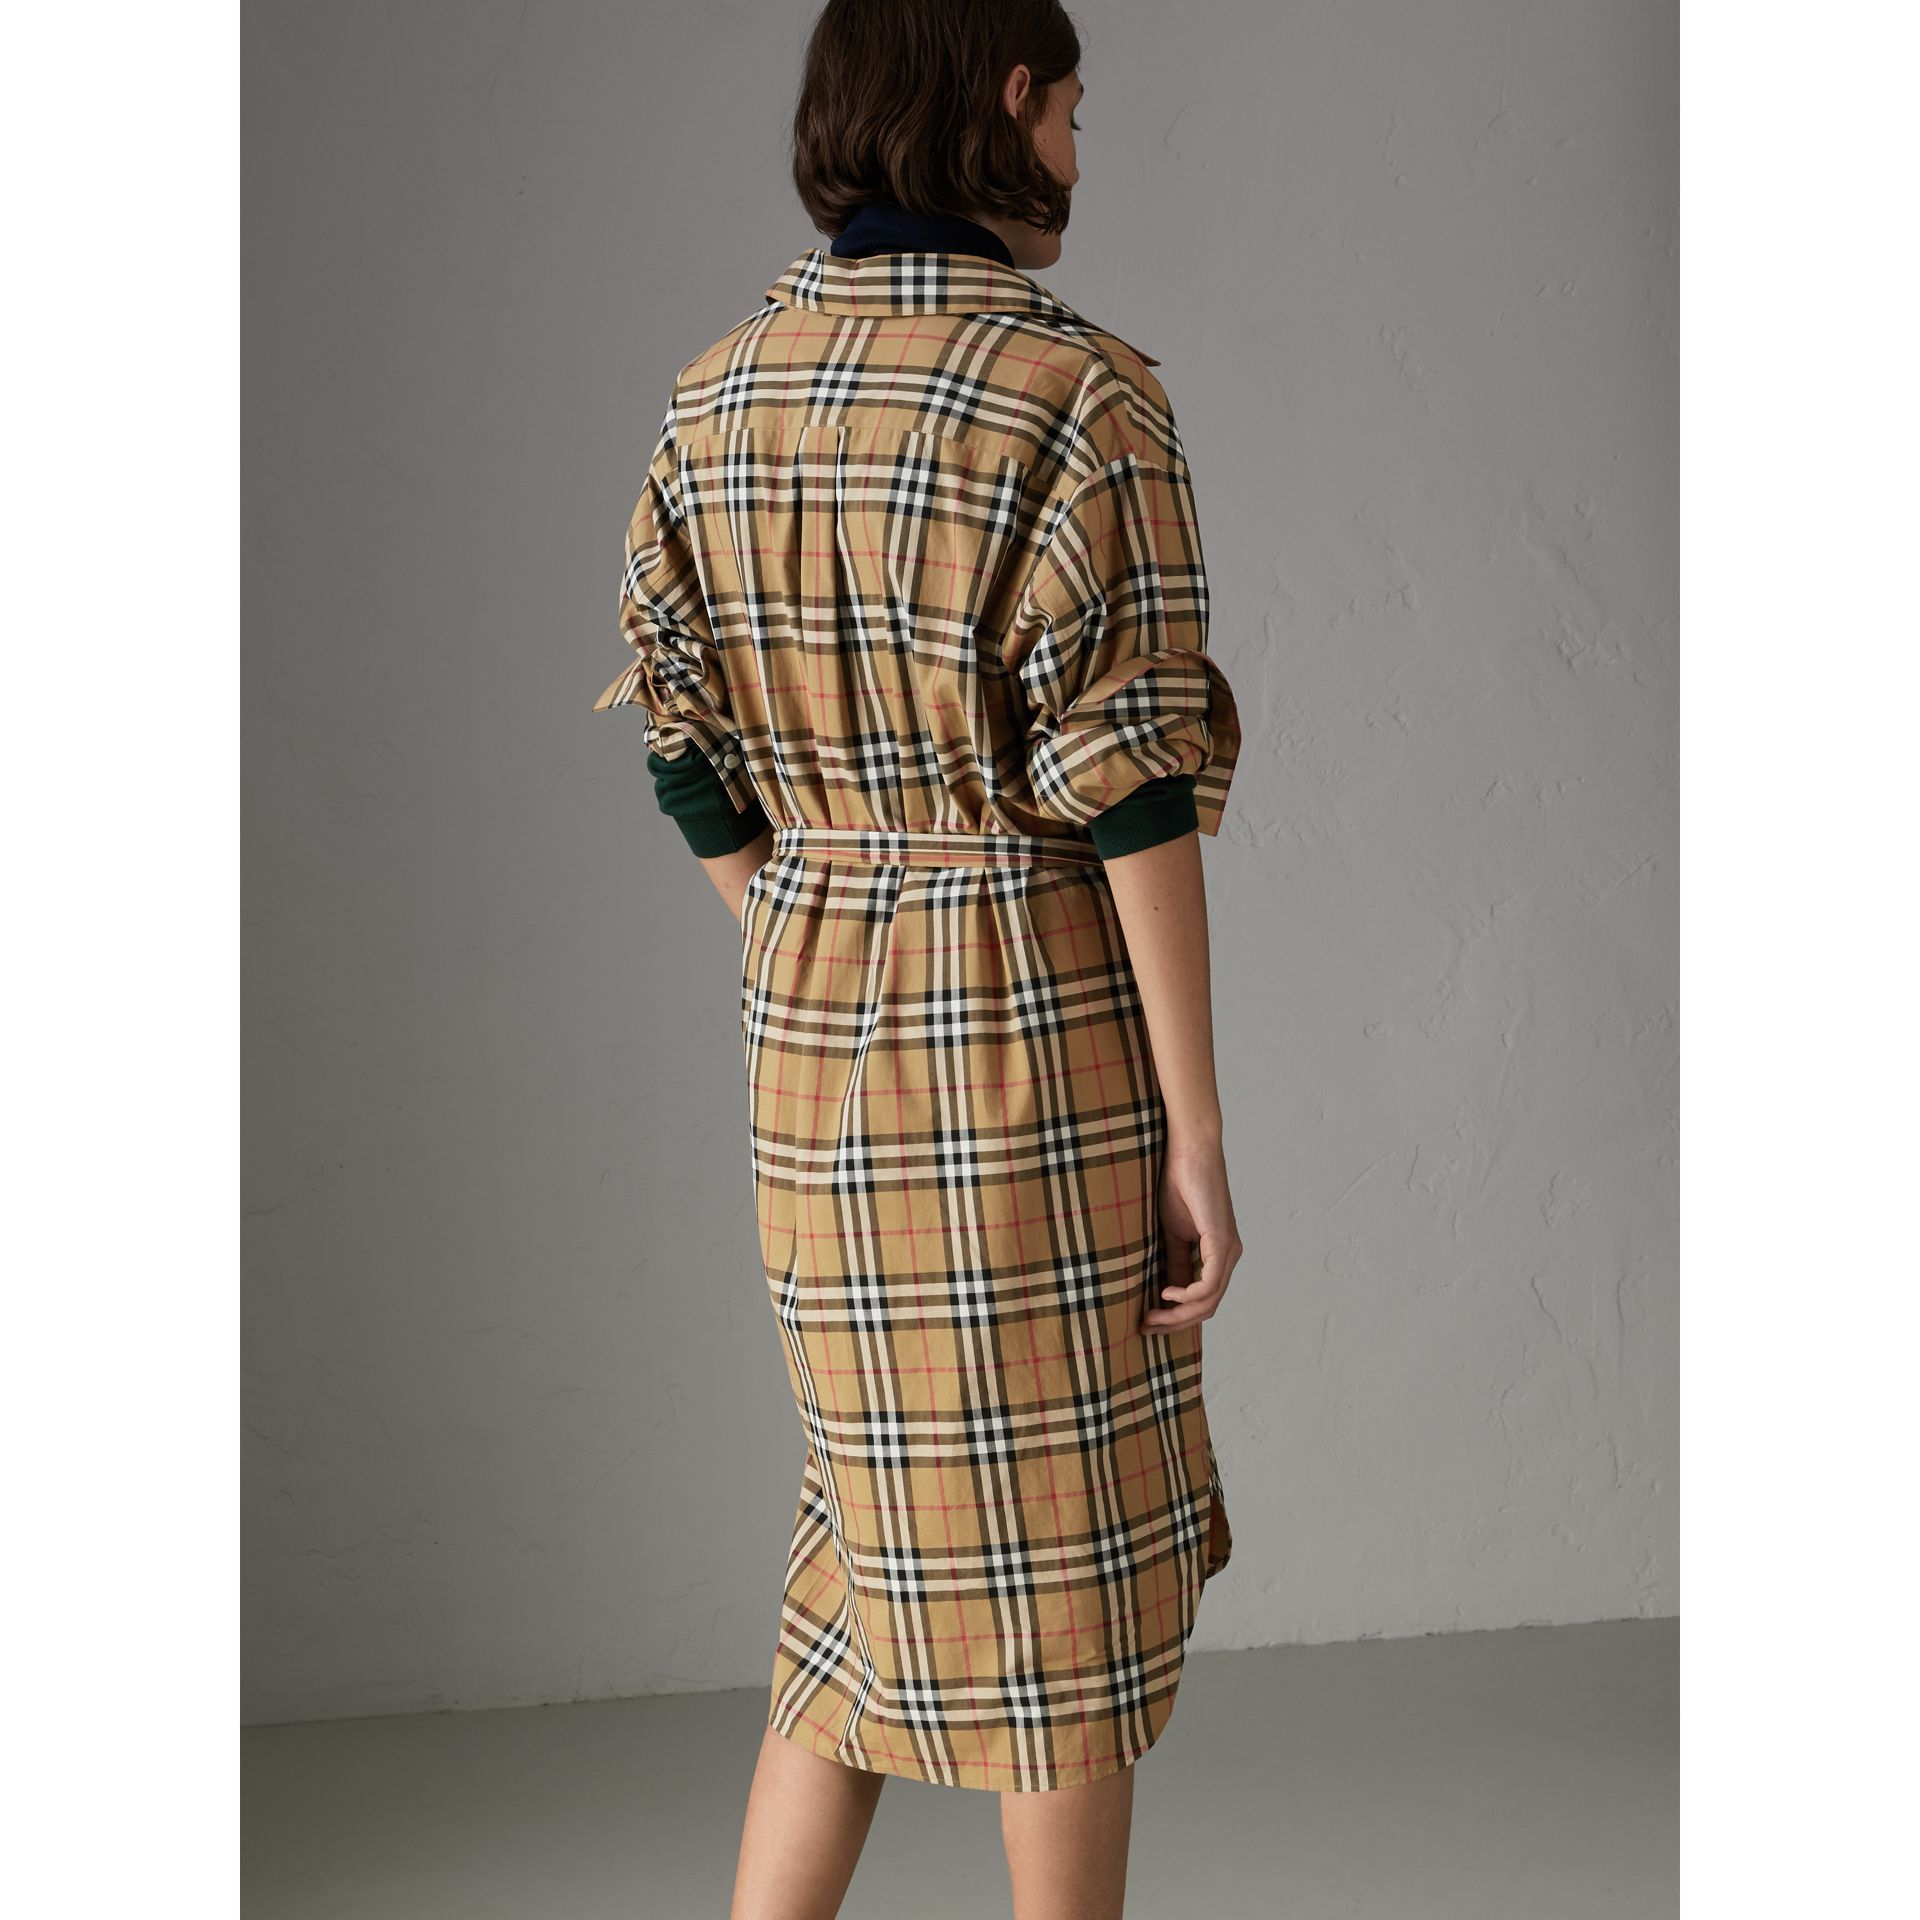 Robe chemise en coton ceinturée à motif Vintage check (Jaune Antique) | Burberry - photo de la galerie 2